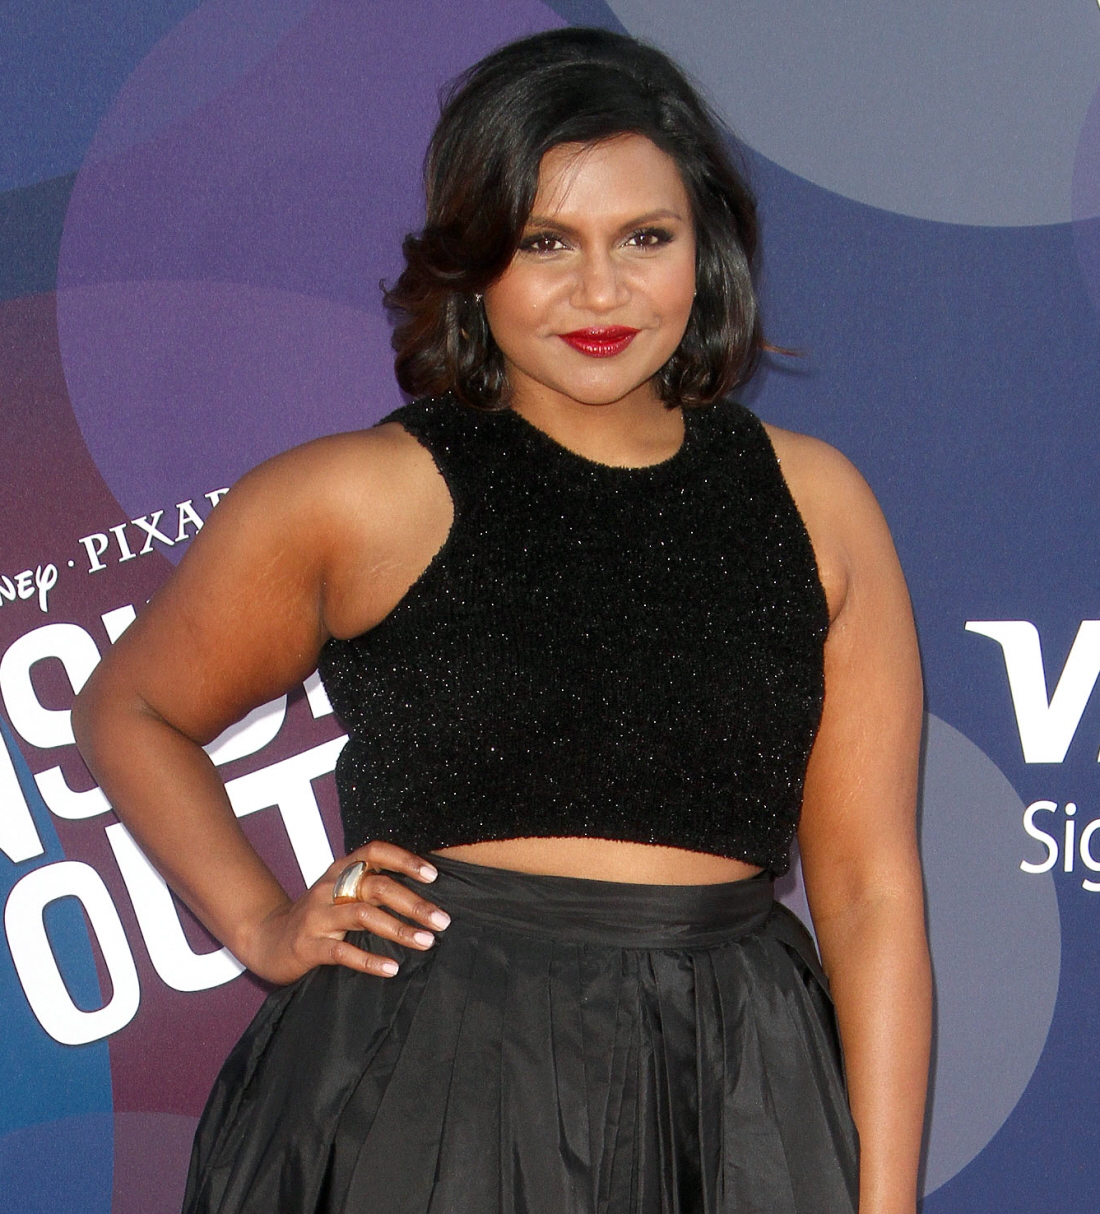 Mindy Kaling: 'Confidence Is Just